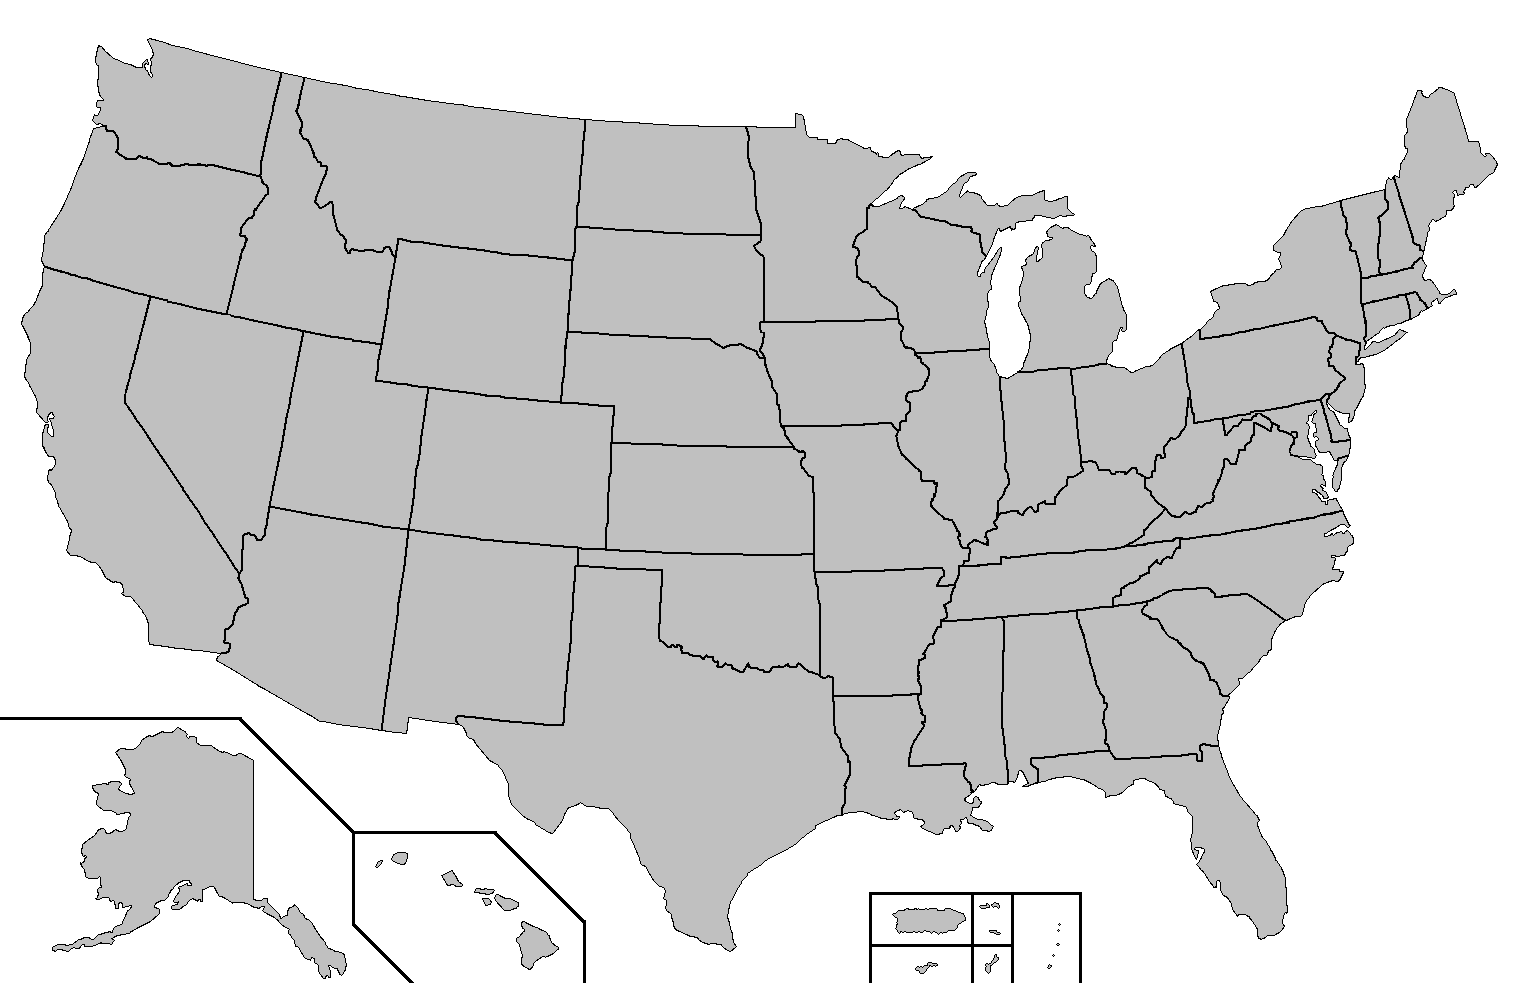 fileblank map of the united statespng